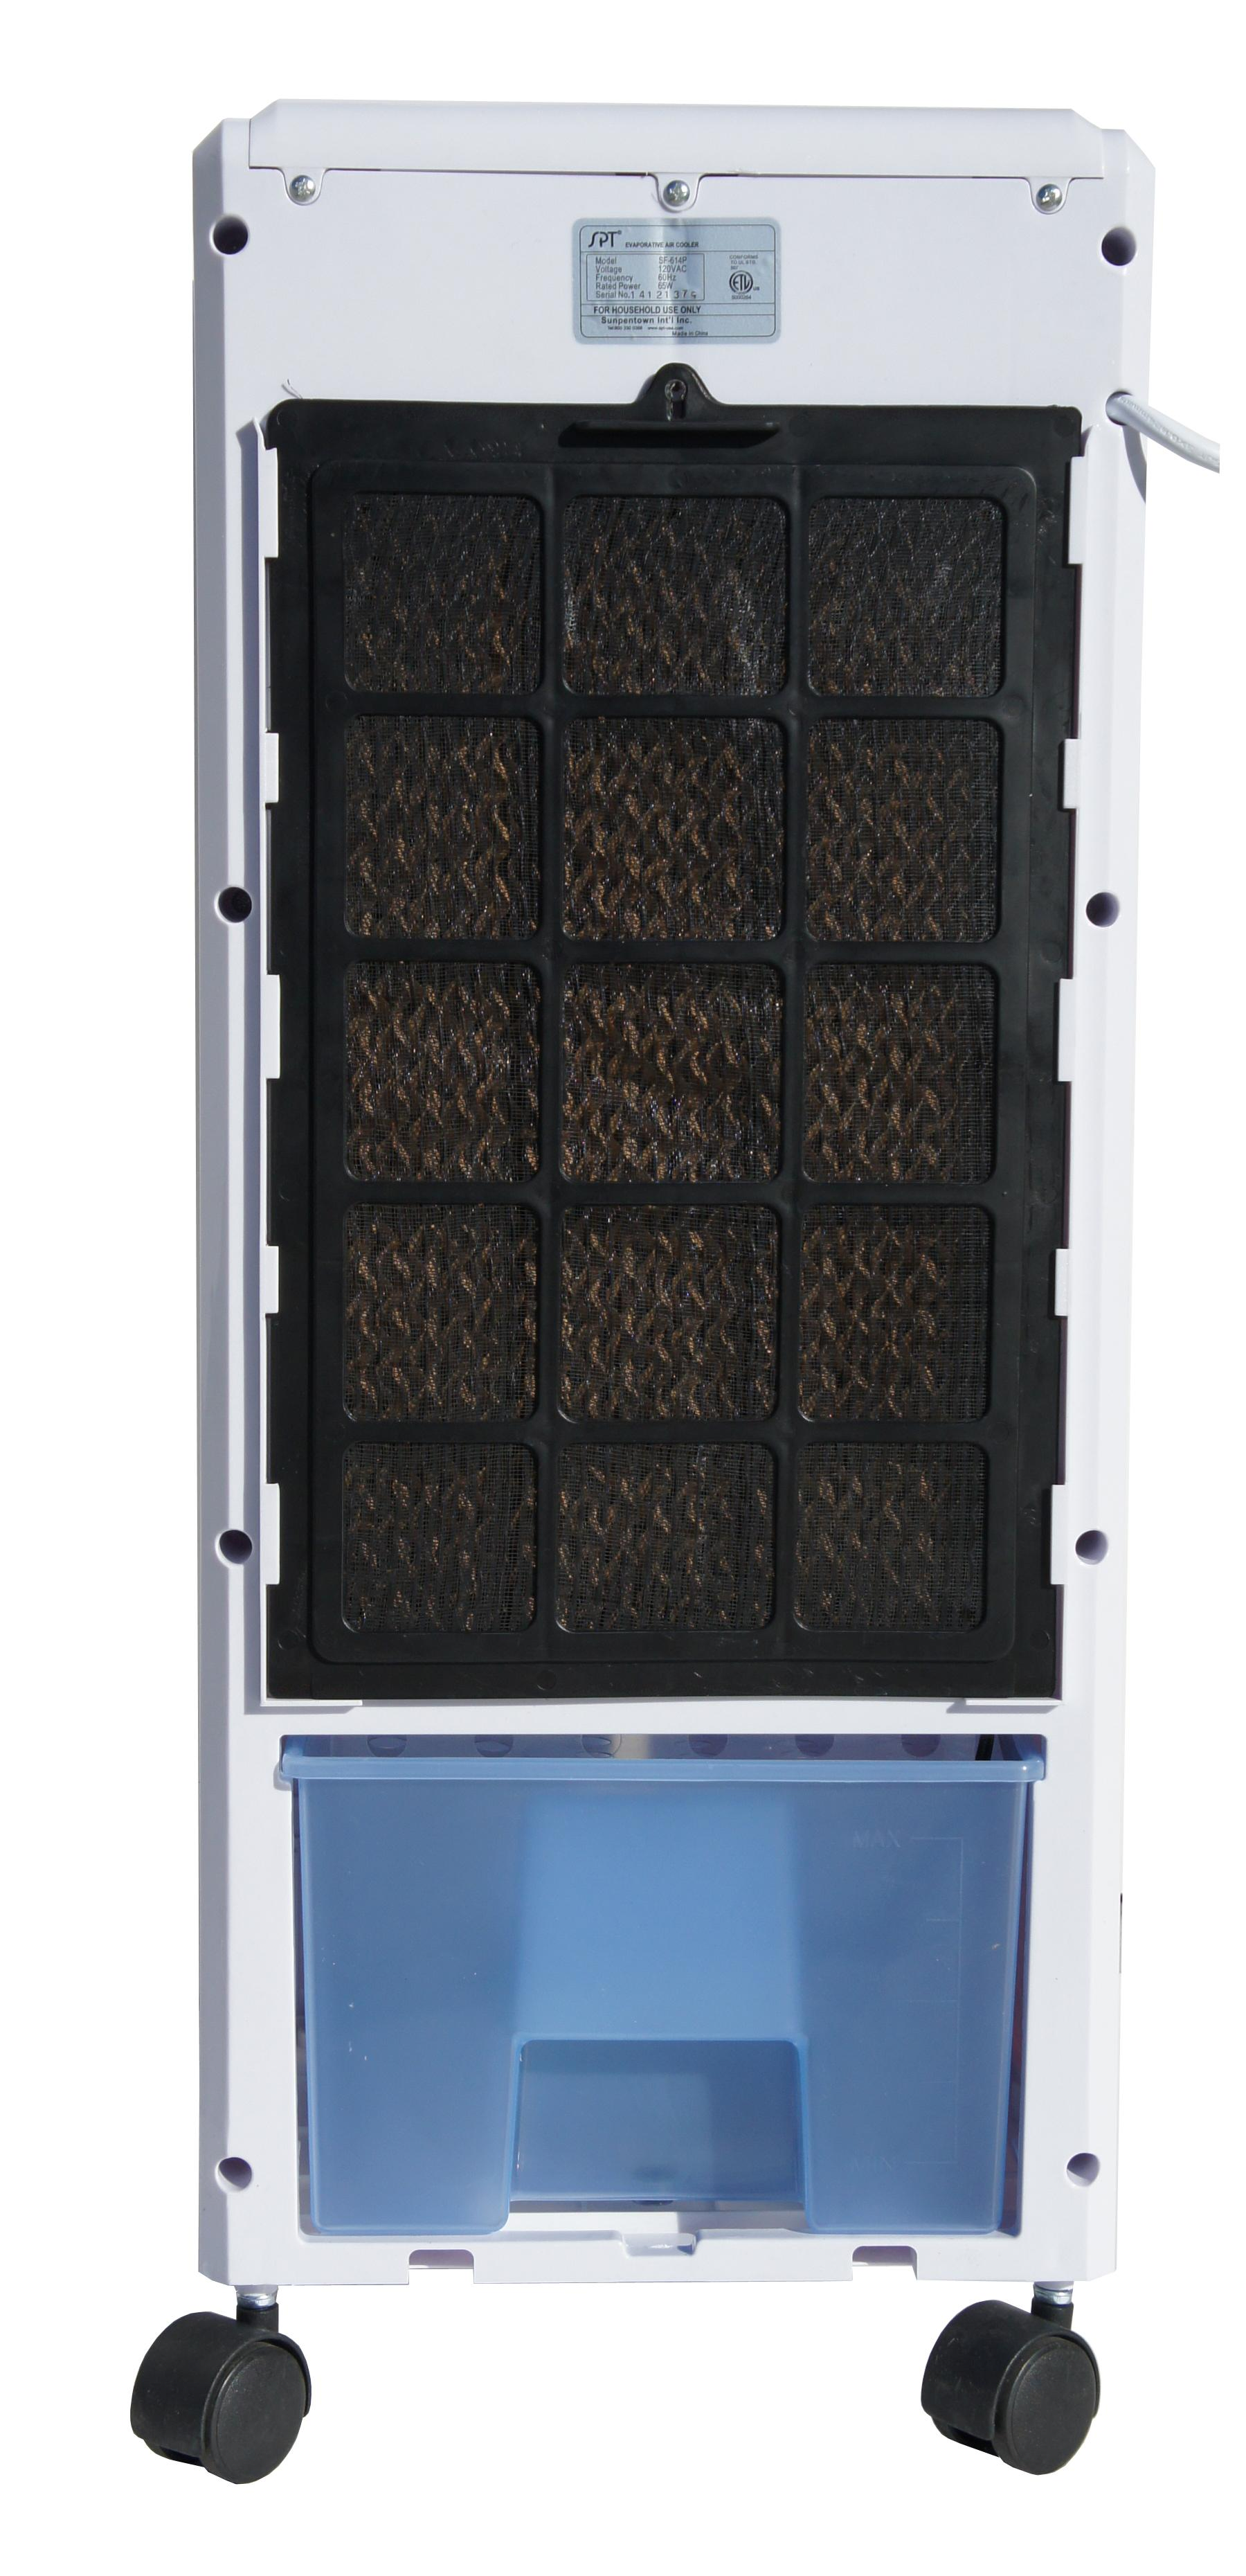 SPT SF 614P Evaporative Air Cooler with 3D Cooling Pad: Home & Kitchen #3F648C